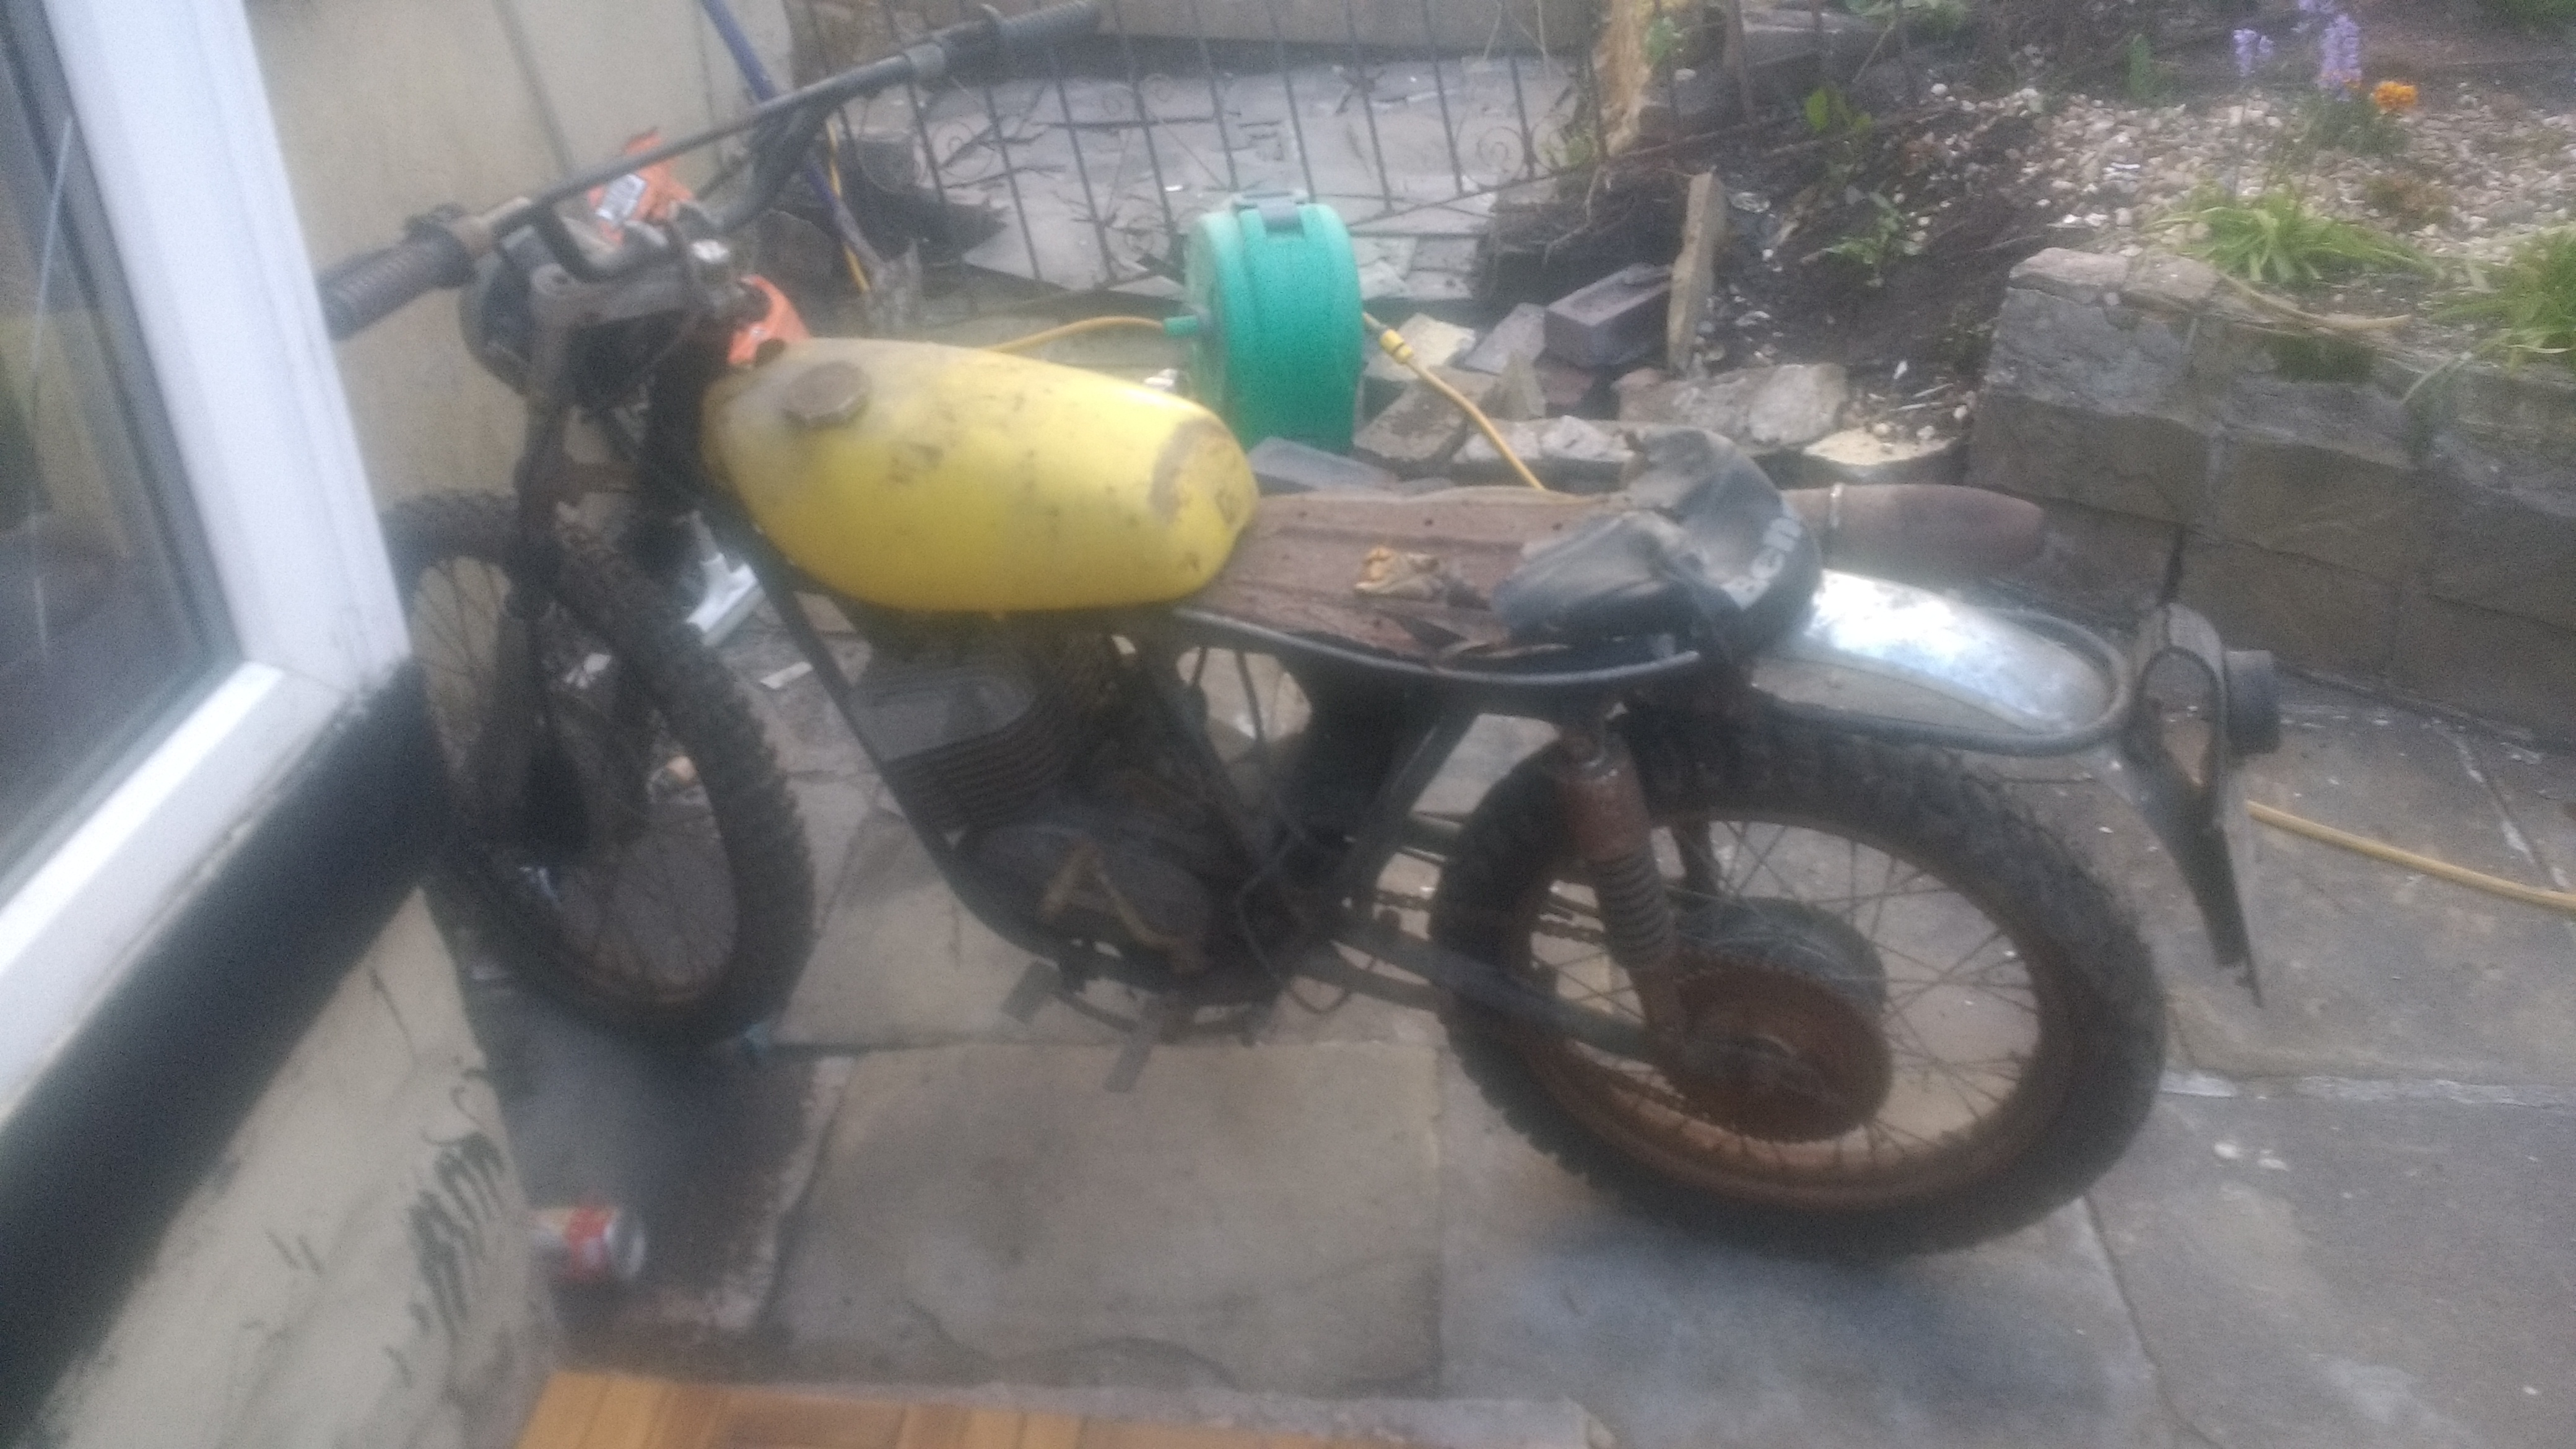 benelli 125 cross project parts help please-img_20170522_203443999_hdr%5B1%5D.jpg